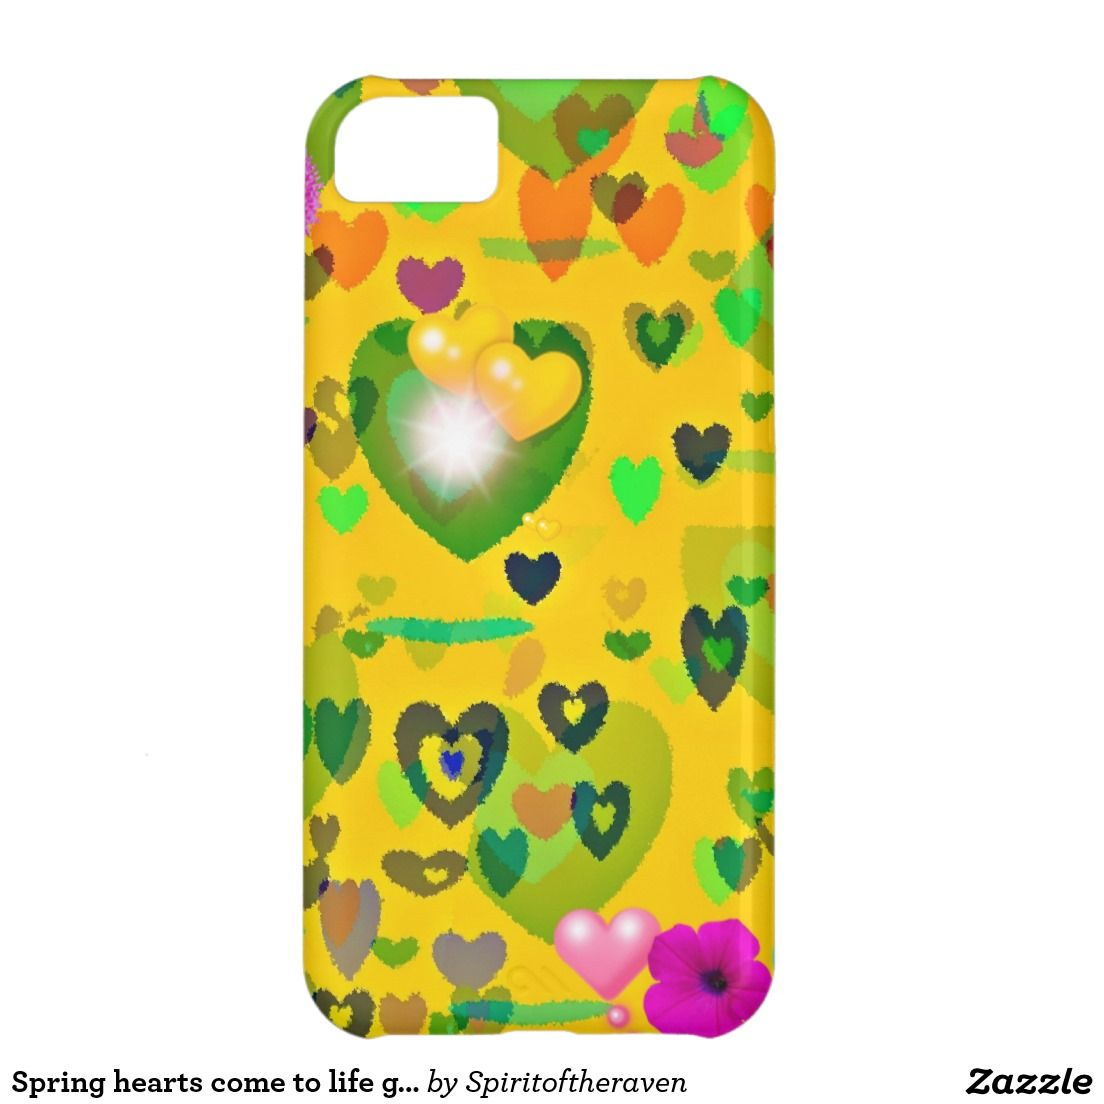 Spring hearts come to life gift collection case for iPhone 5C